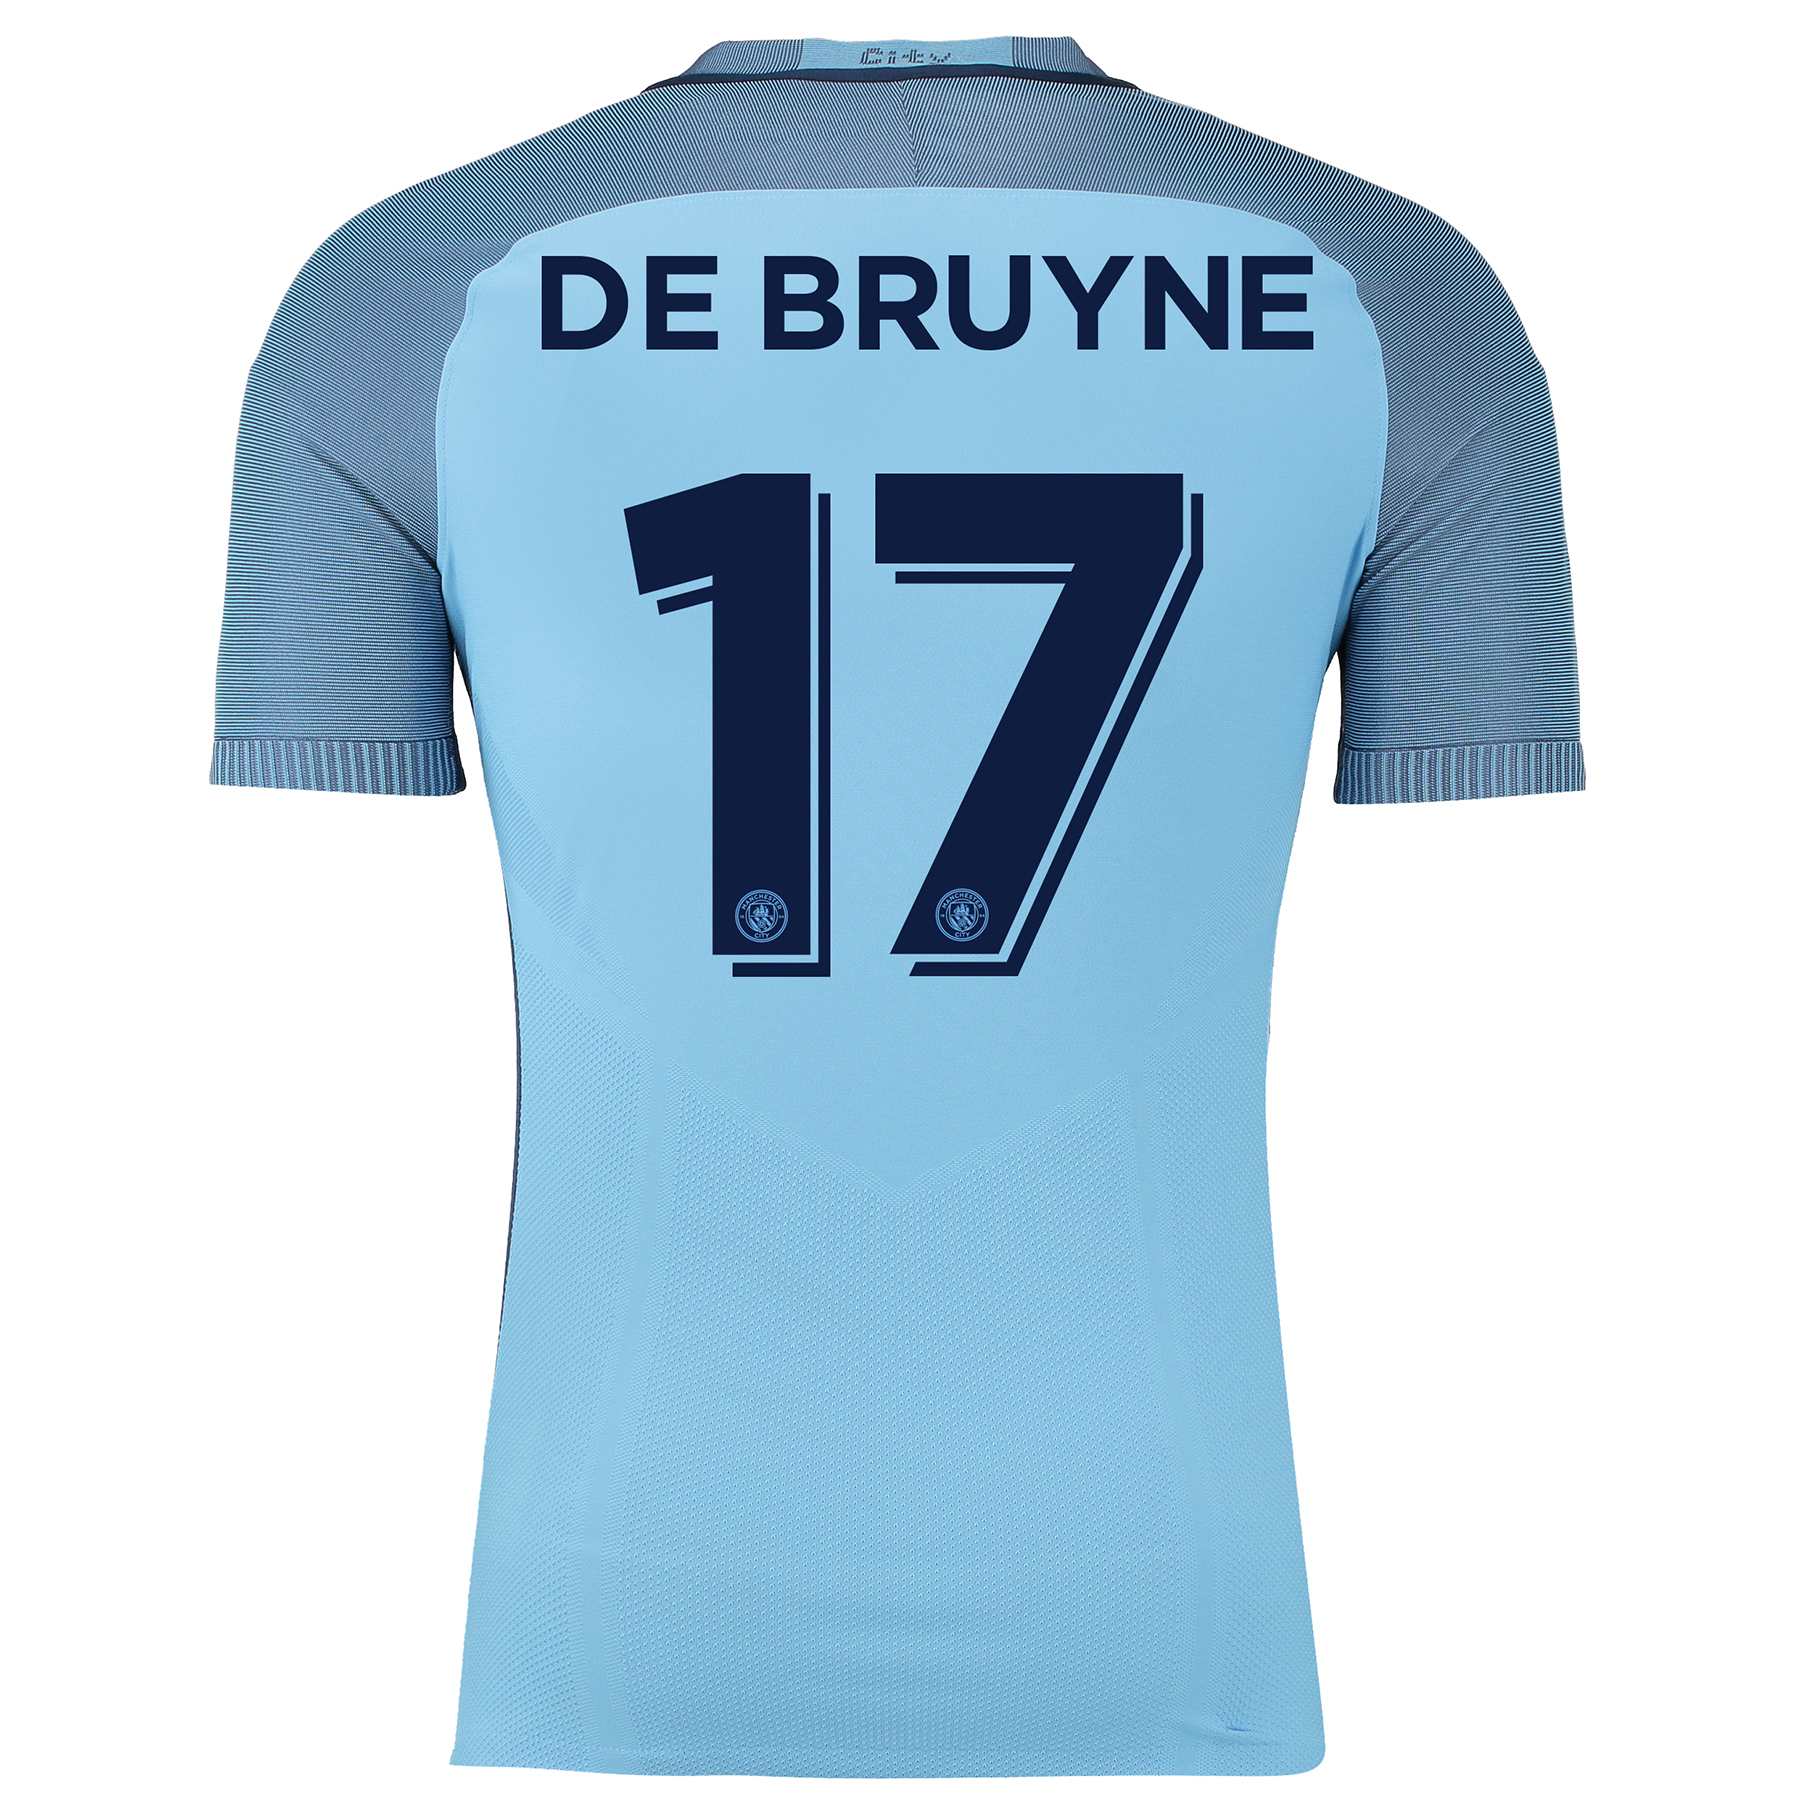 Manchester City Home Cup Match Shirt 2016-17 with De Bruyne 17 printin